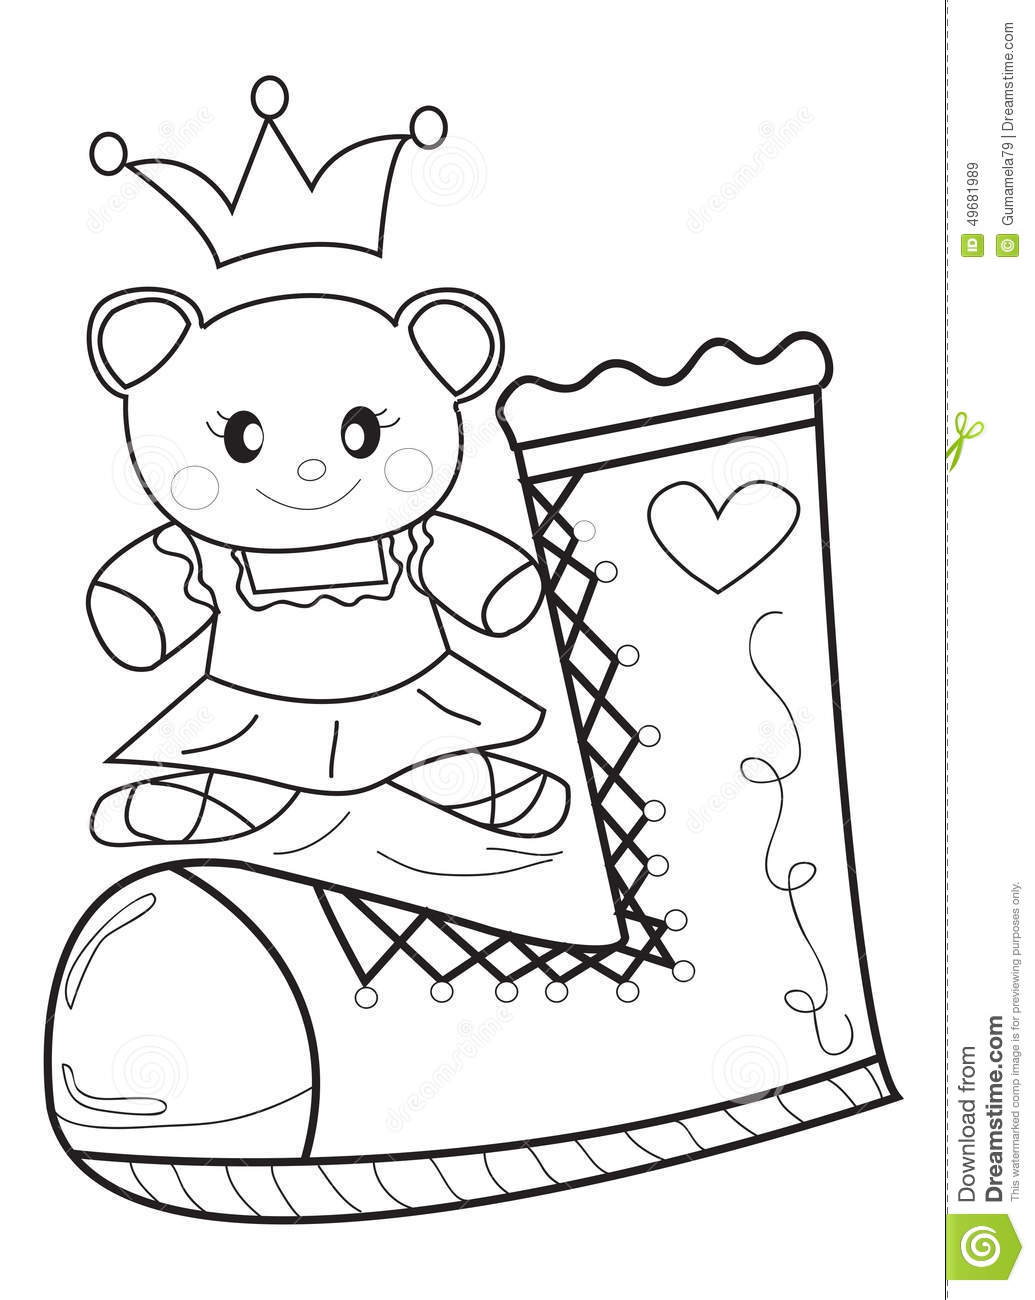 Doll And Shoe Coloring Page Stock Illustration Illustration Of